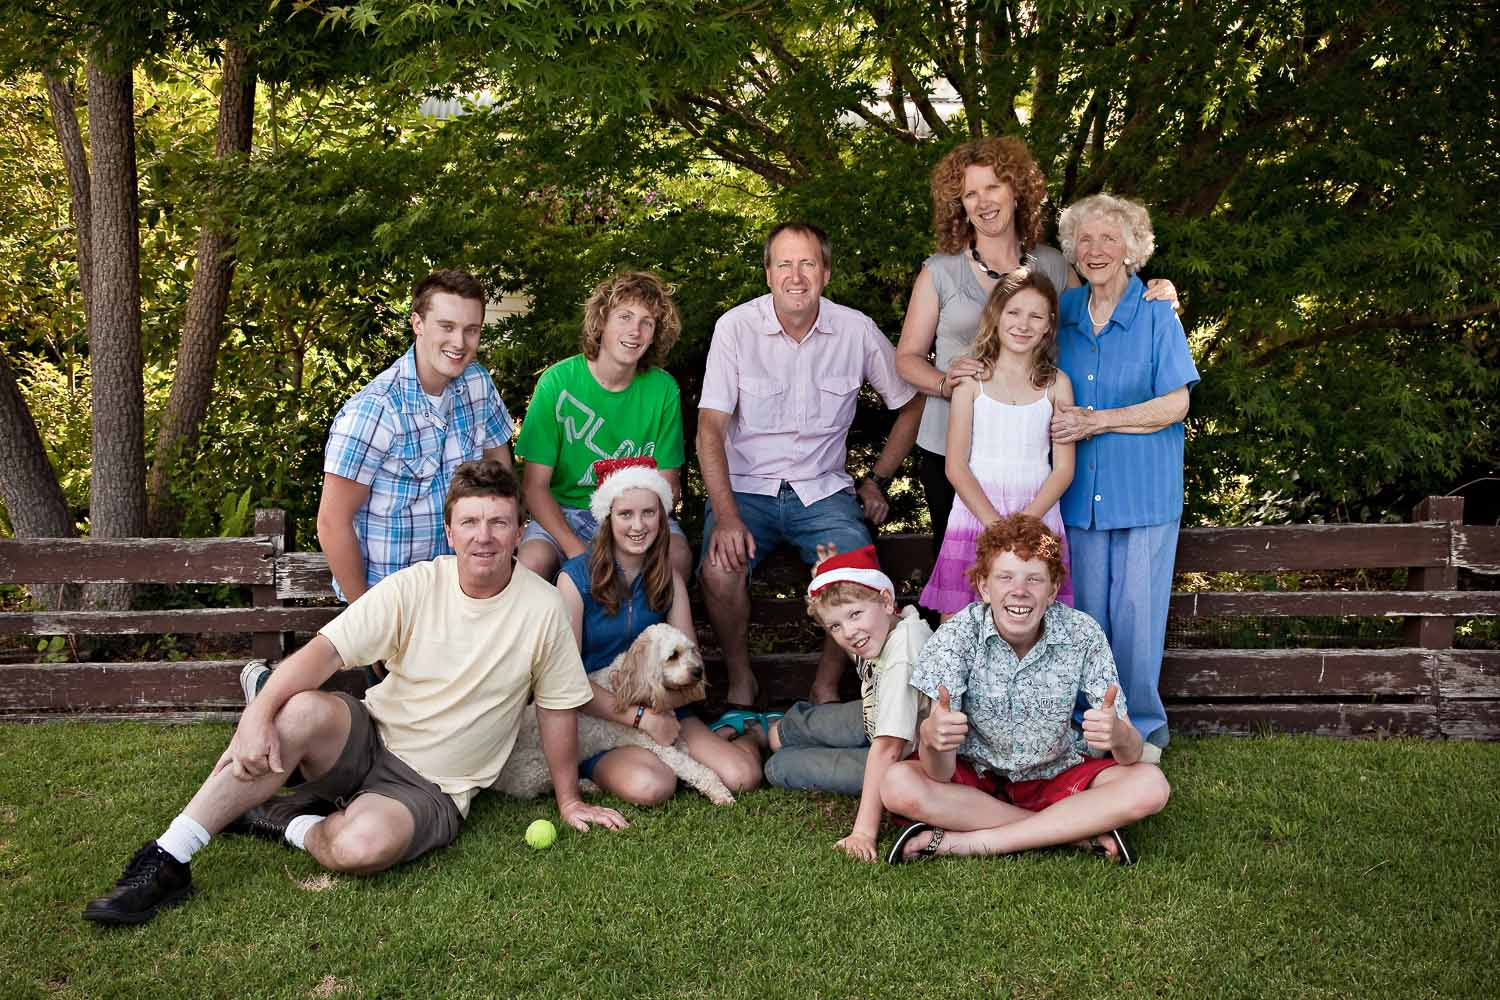 This photo, made on my mum's nature strip during Christmas 2008, includes the members of the extended family who made it back to mum's for the celebrations. Sadly, as the photographer, I'm usually on the other side of the lens.